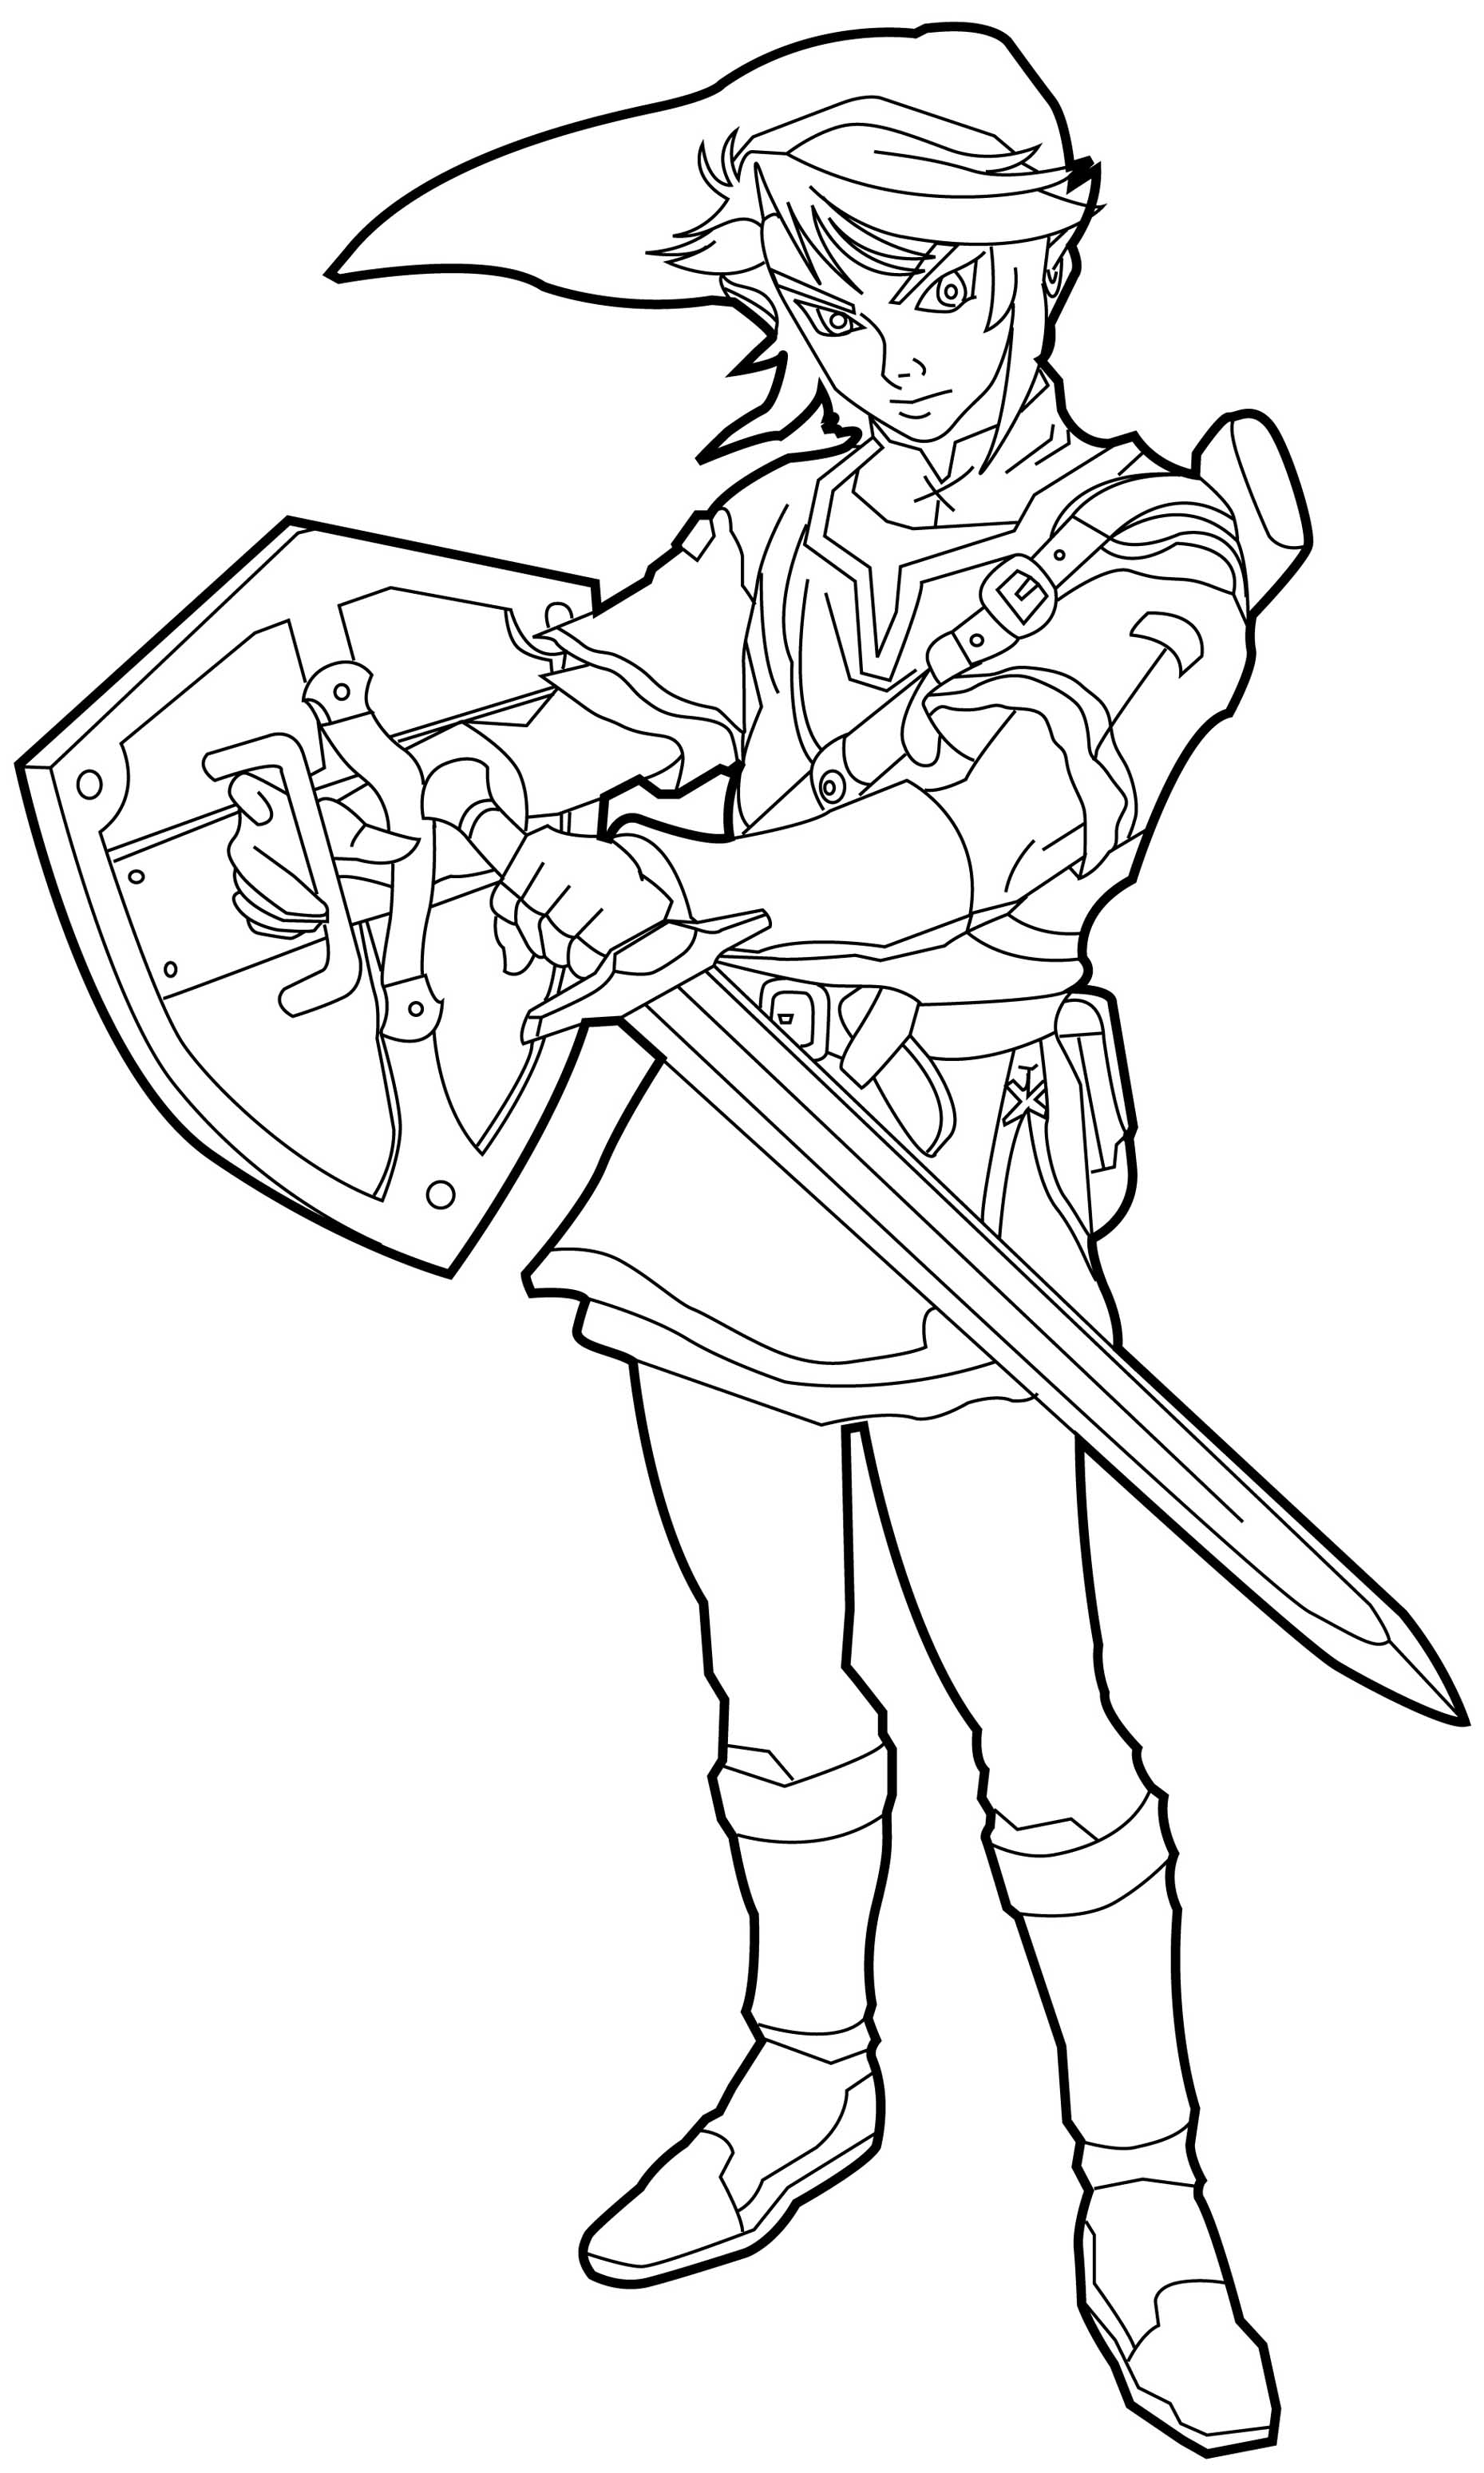 1859x3098 Best Of Zelda Twilight Princess Coloring Pages For Adults Gallery